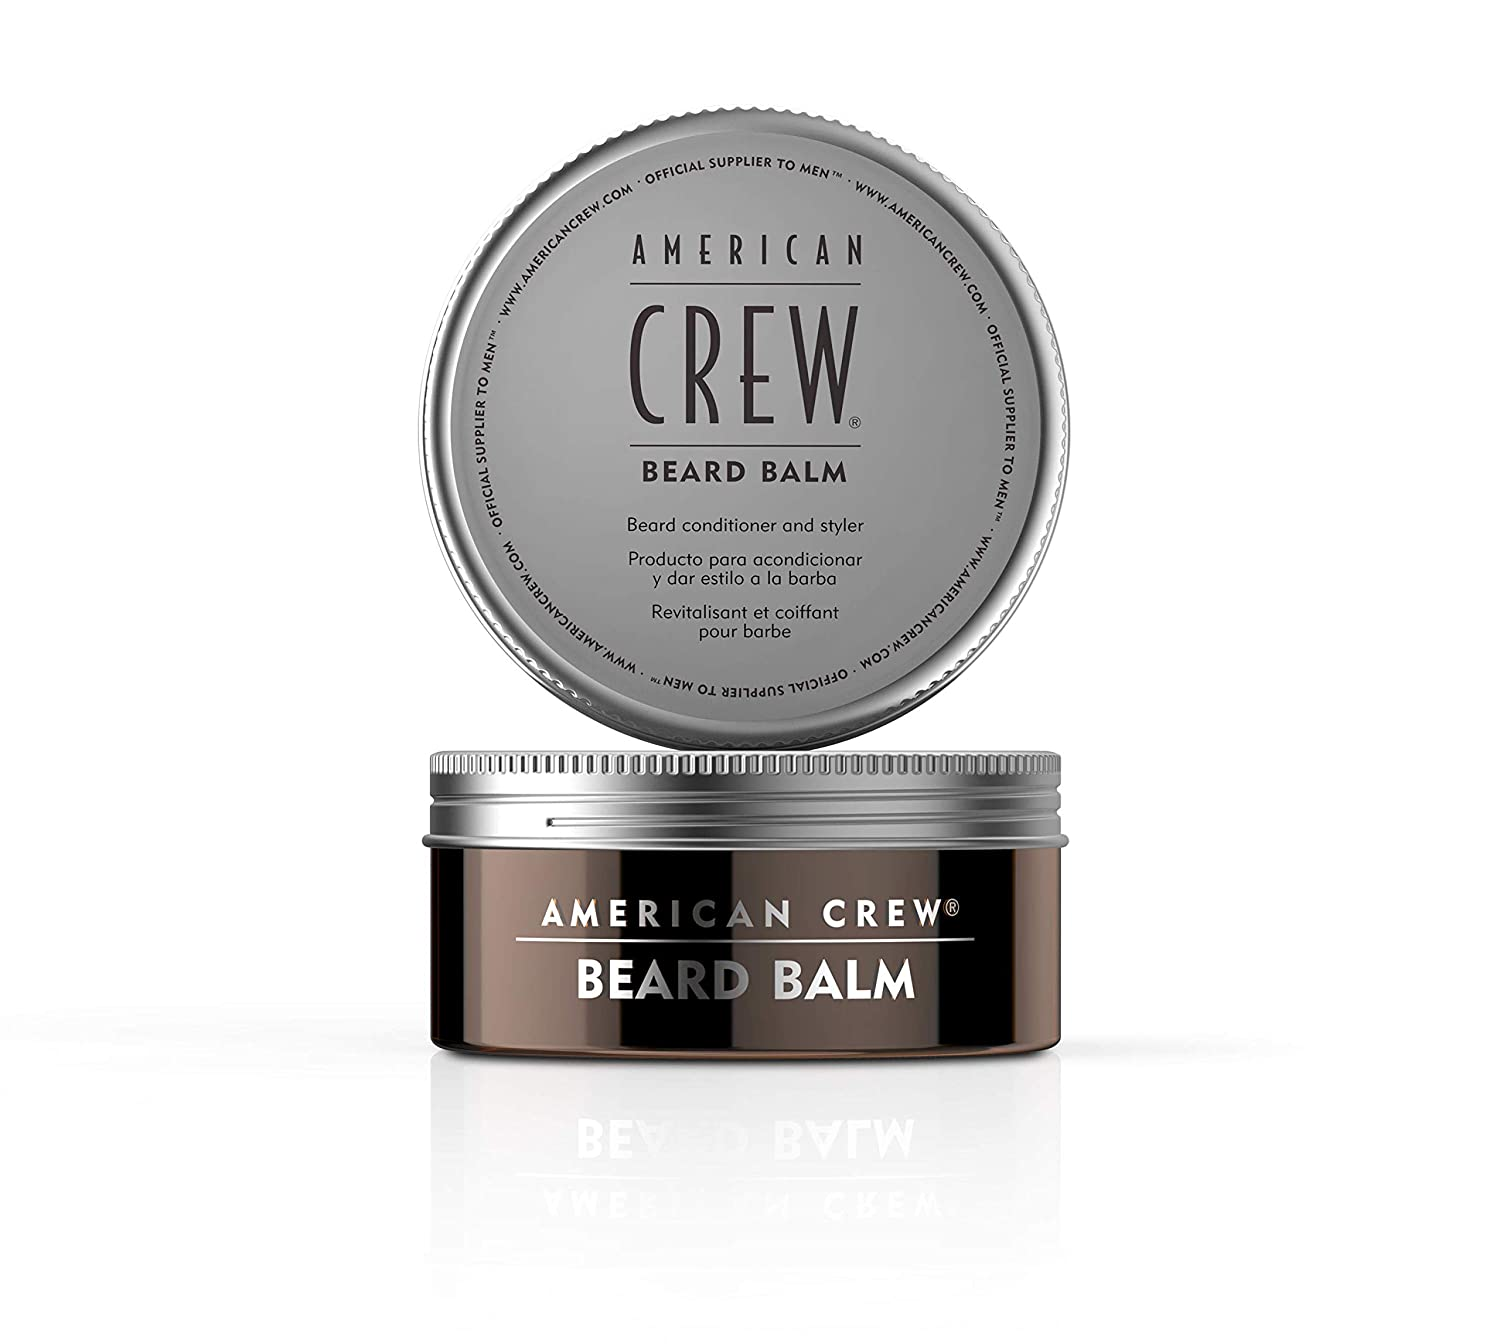 AMERICAN CREW Beard Balm with Sweet Almond Oil and Shea Butter - Conditioner & Styler